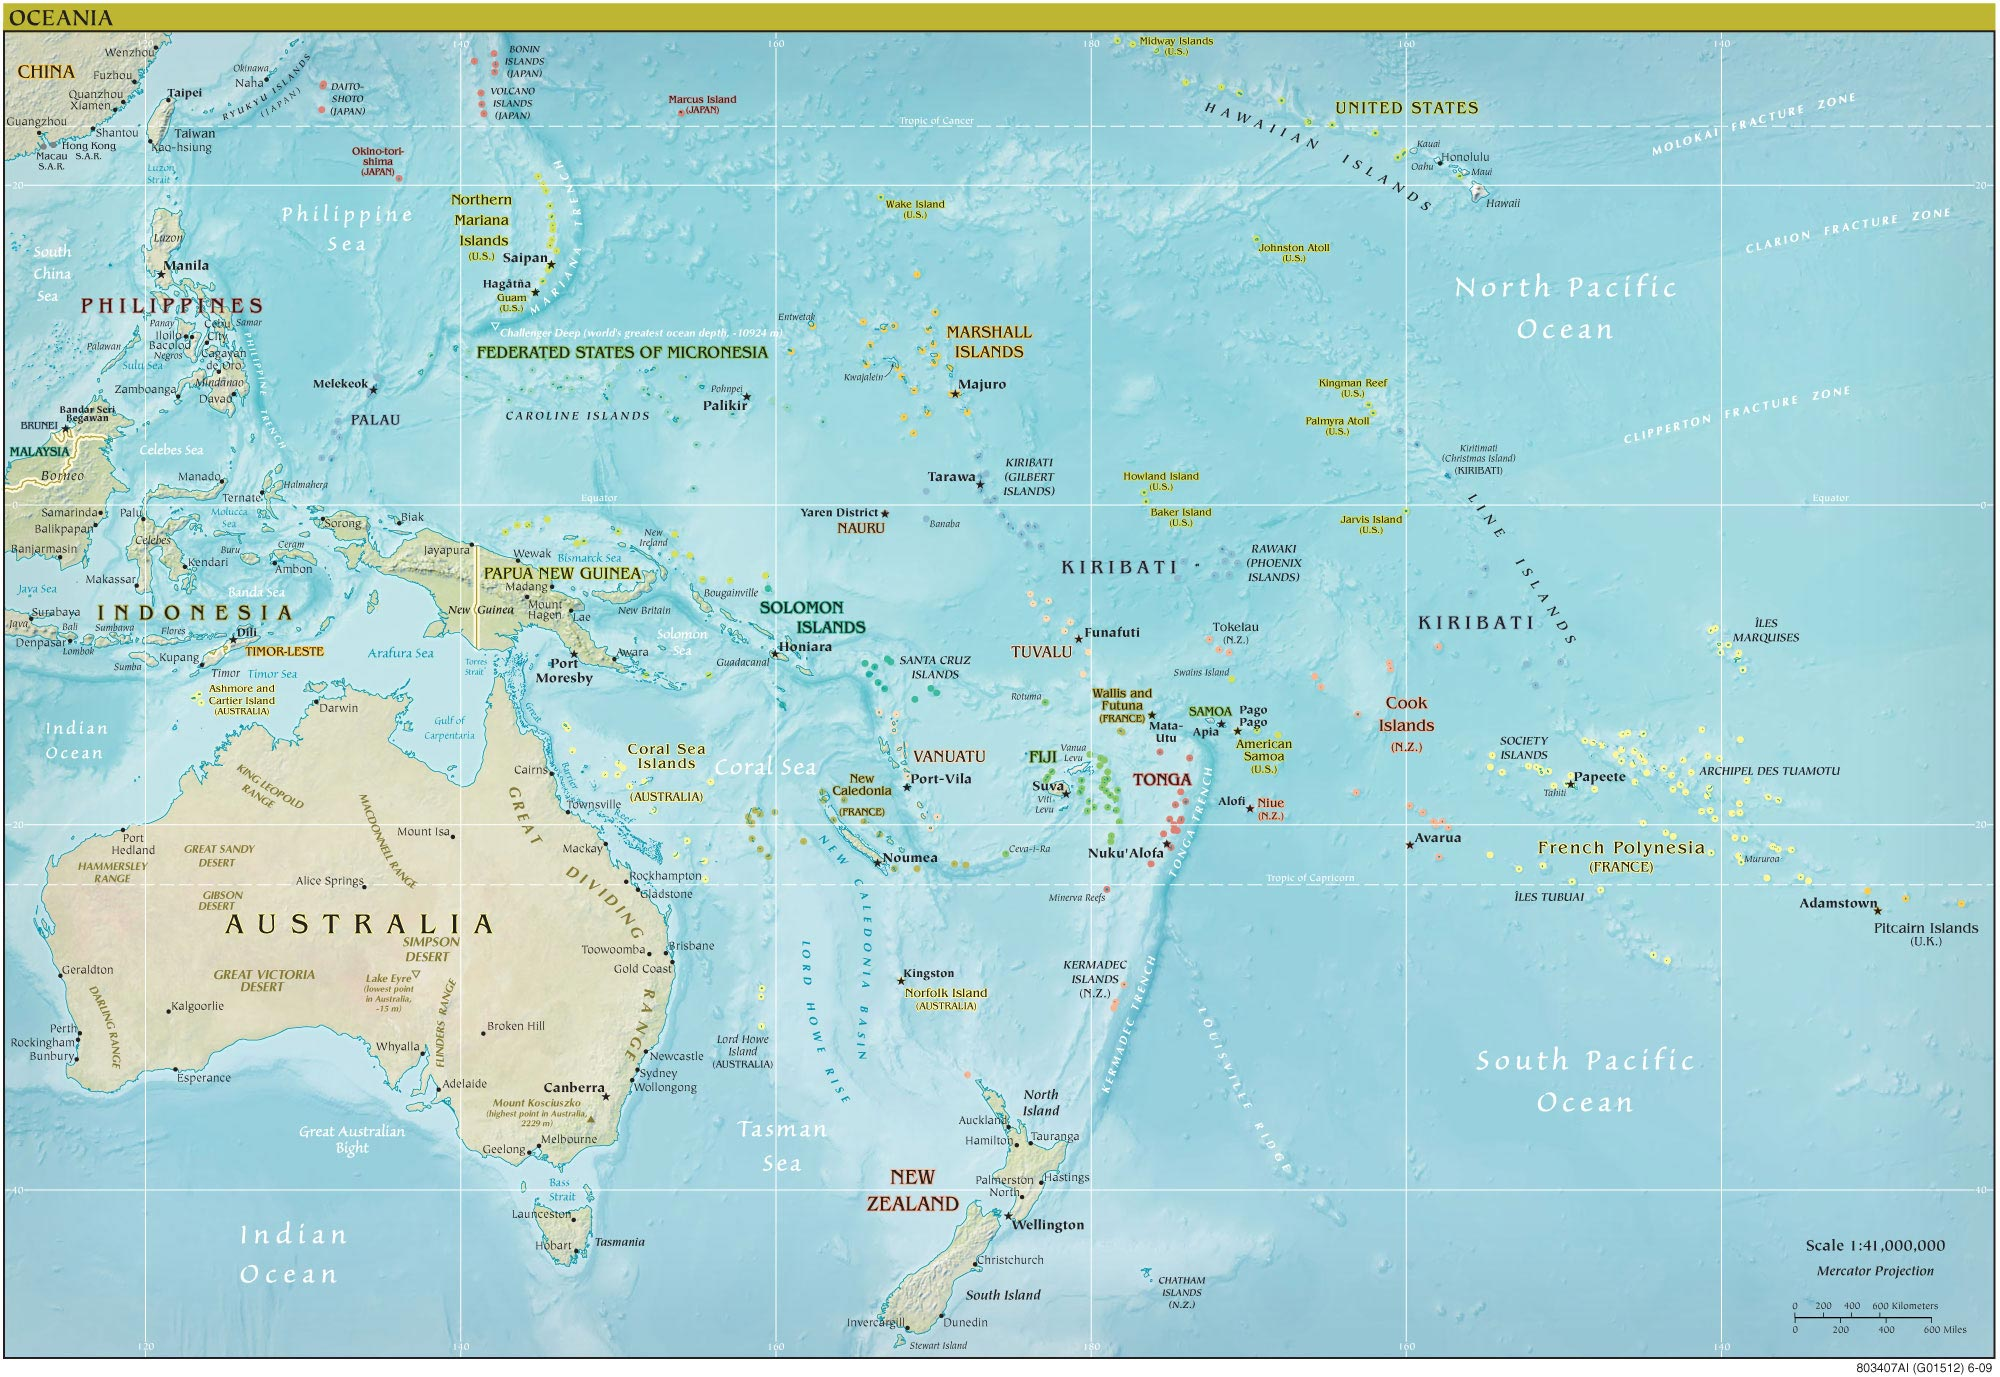 Oceania Physical Big Map Mapsofnet - Physical map of oceania